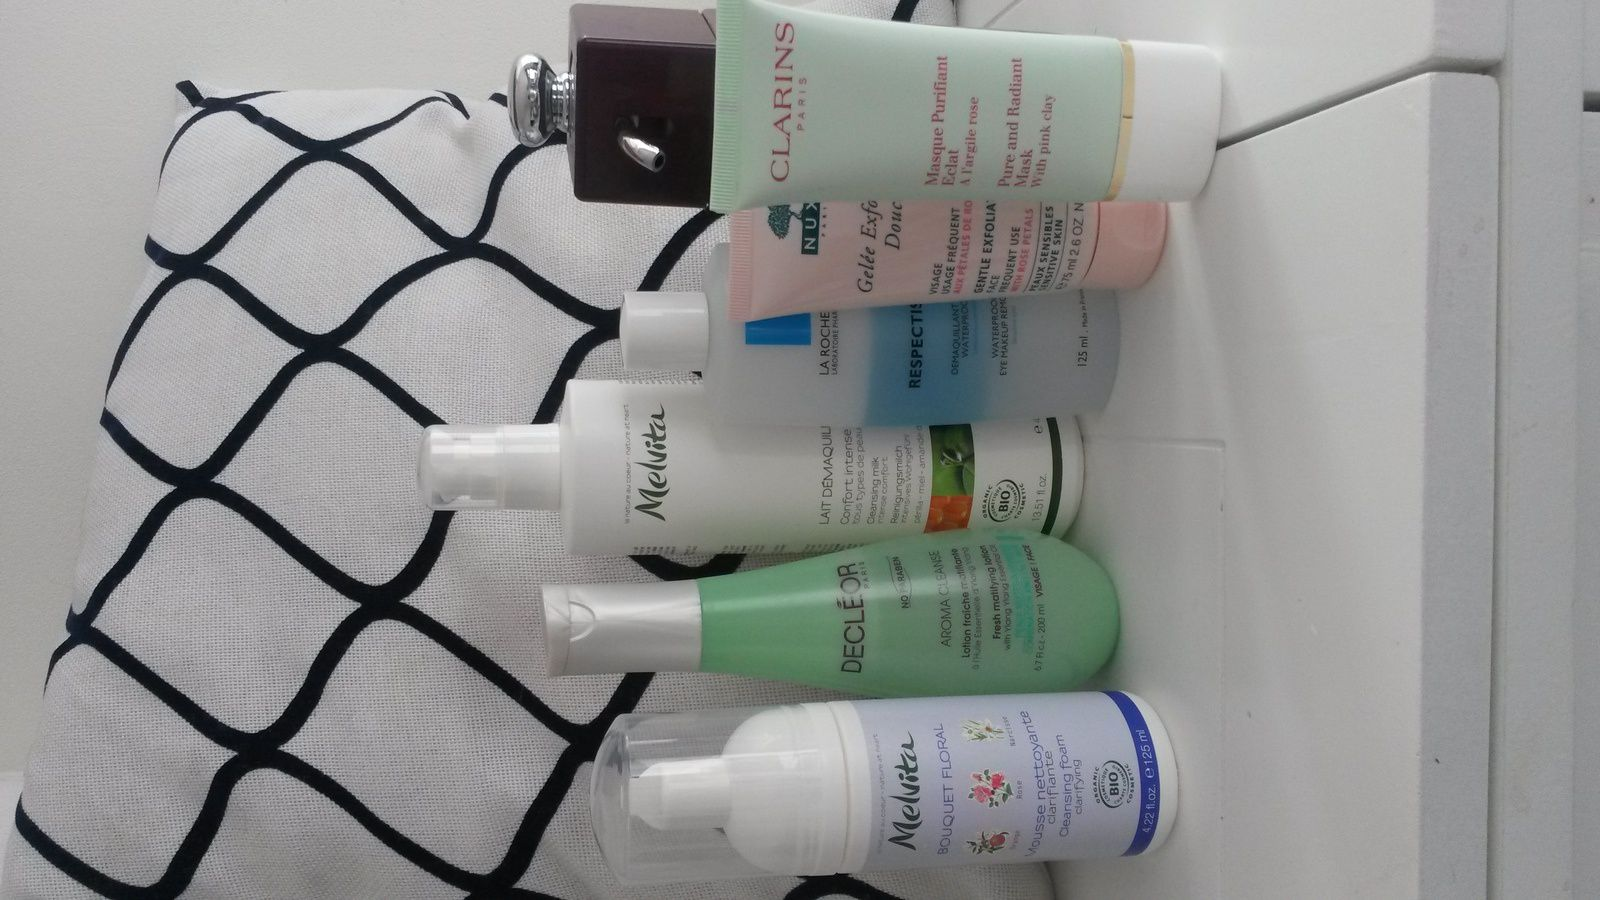 Routine beauté 1ère partie : on se démaquille, on nettoie, on tonifie, on exfolie, et on masque!